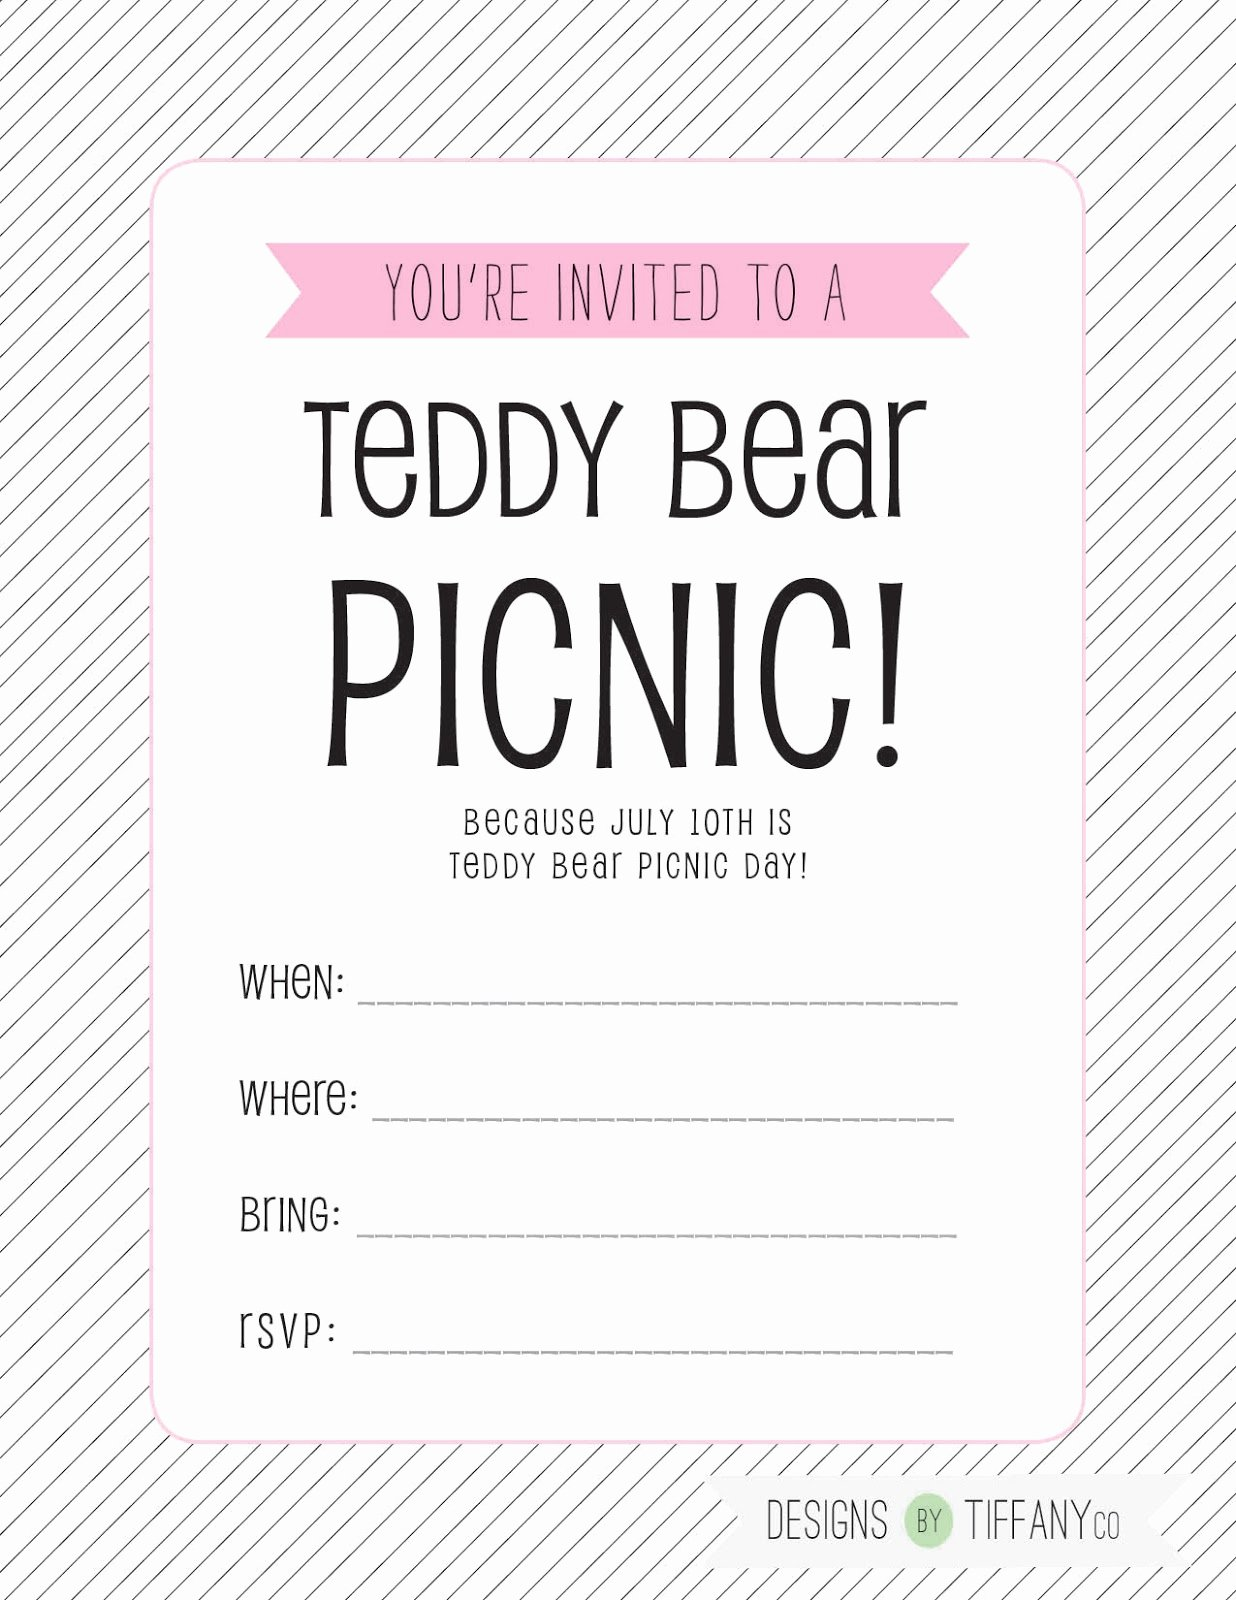 Picnic Invitation Templates Free Inspirational Free Printable July 10th is Teddy Bear Picnic Day